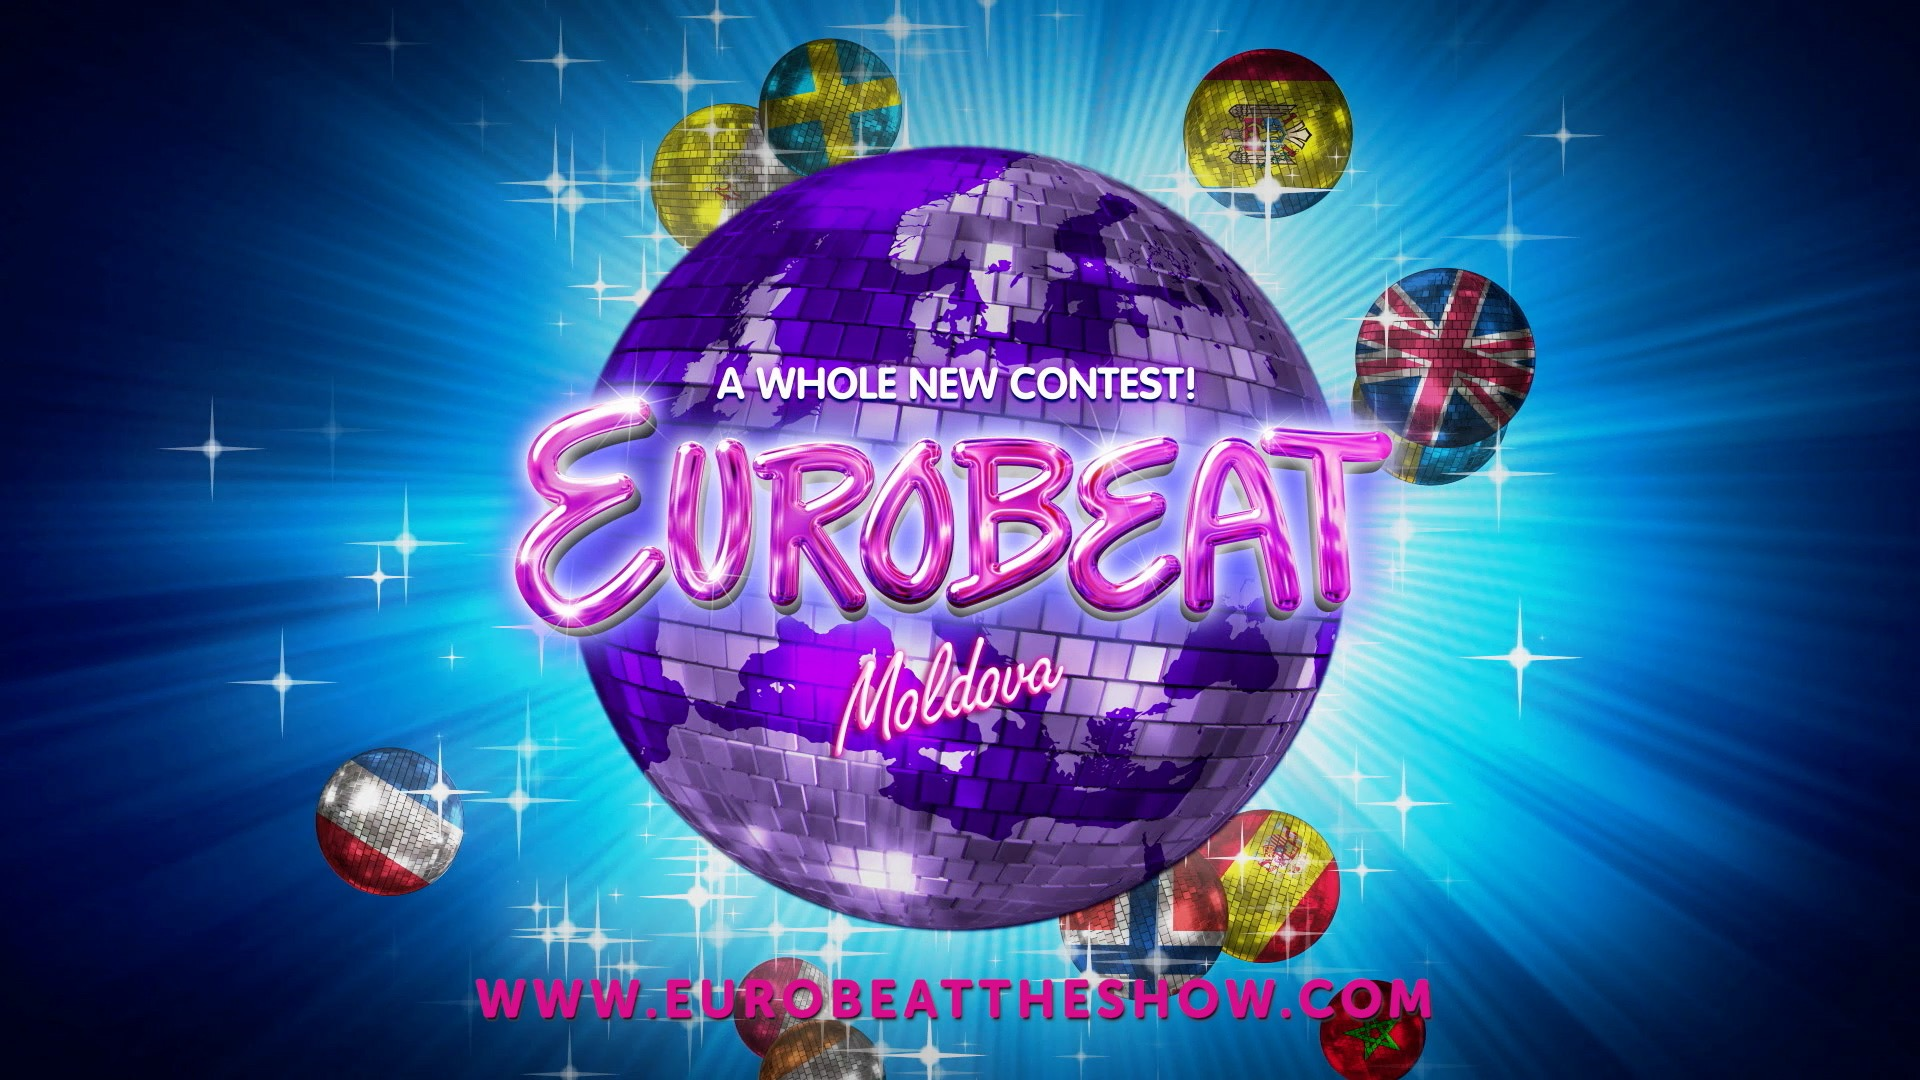 Eurobeat Moldova - Musical - Craig Christie and Andrew Patterson